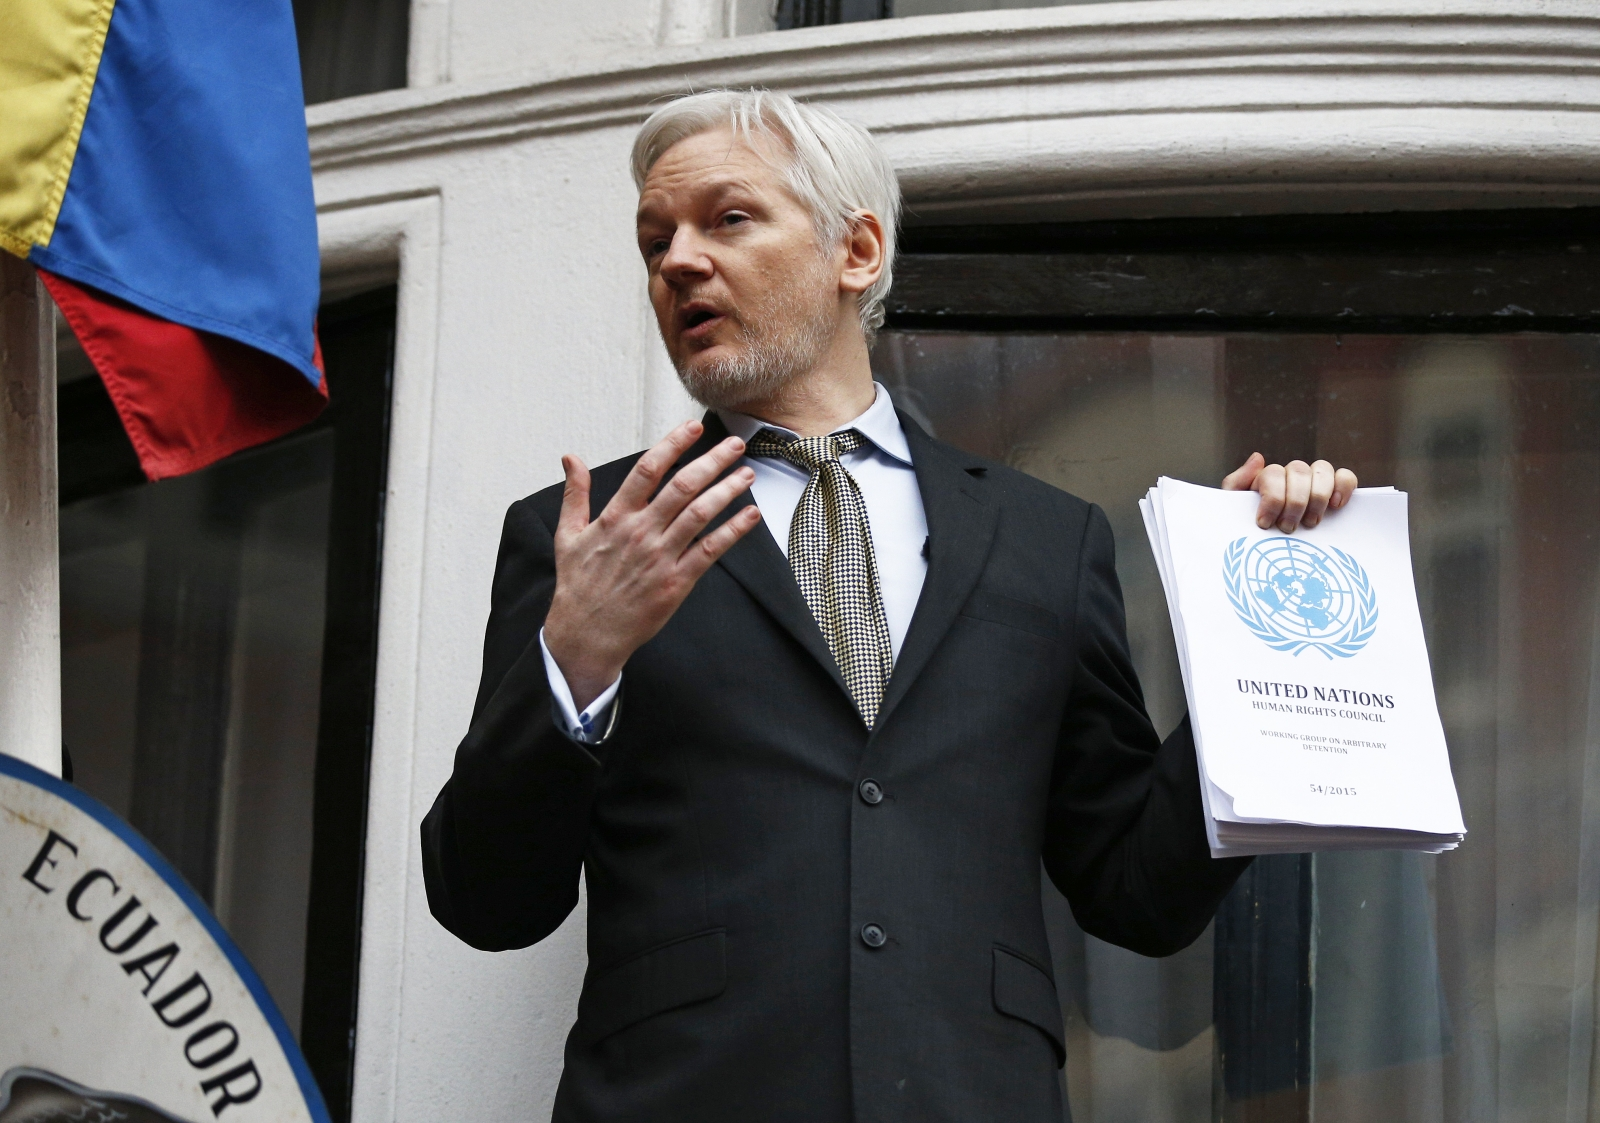 Julianh Assange addresses the media of the